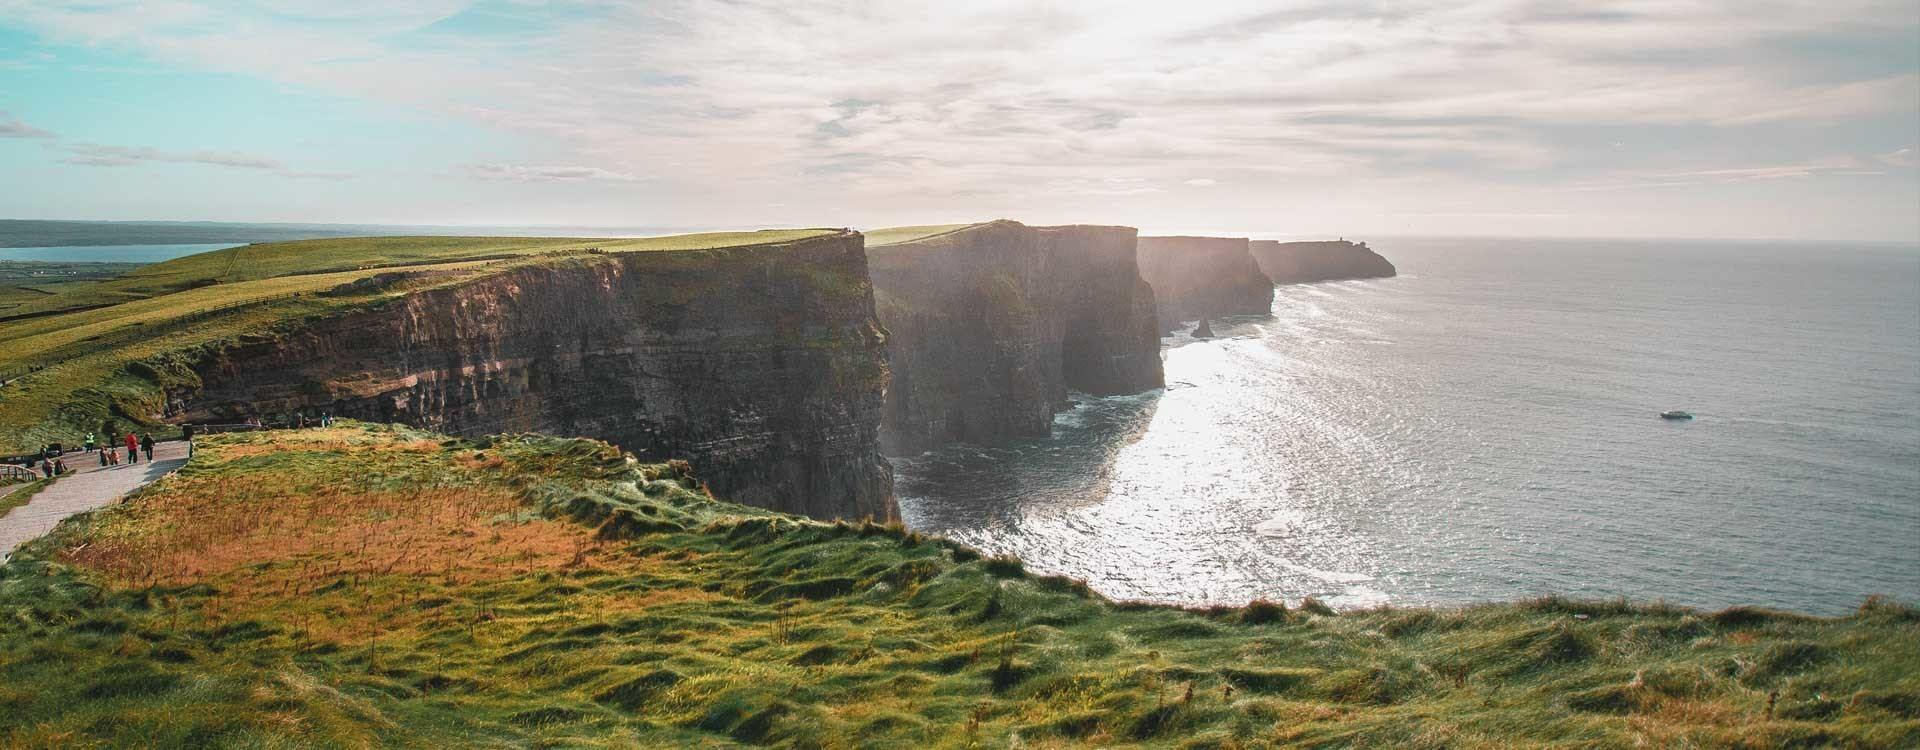 Small Group Cliffs of Moher Tour from Dublin